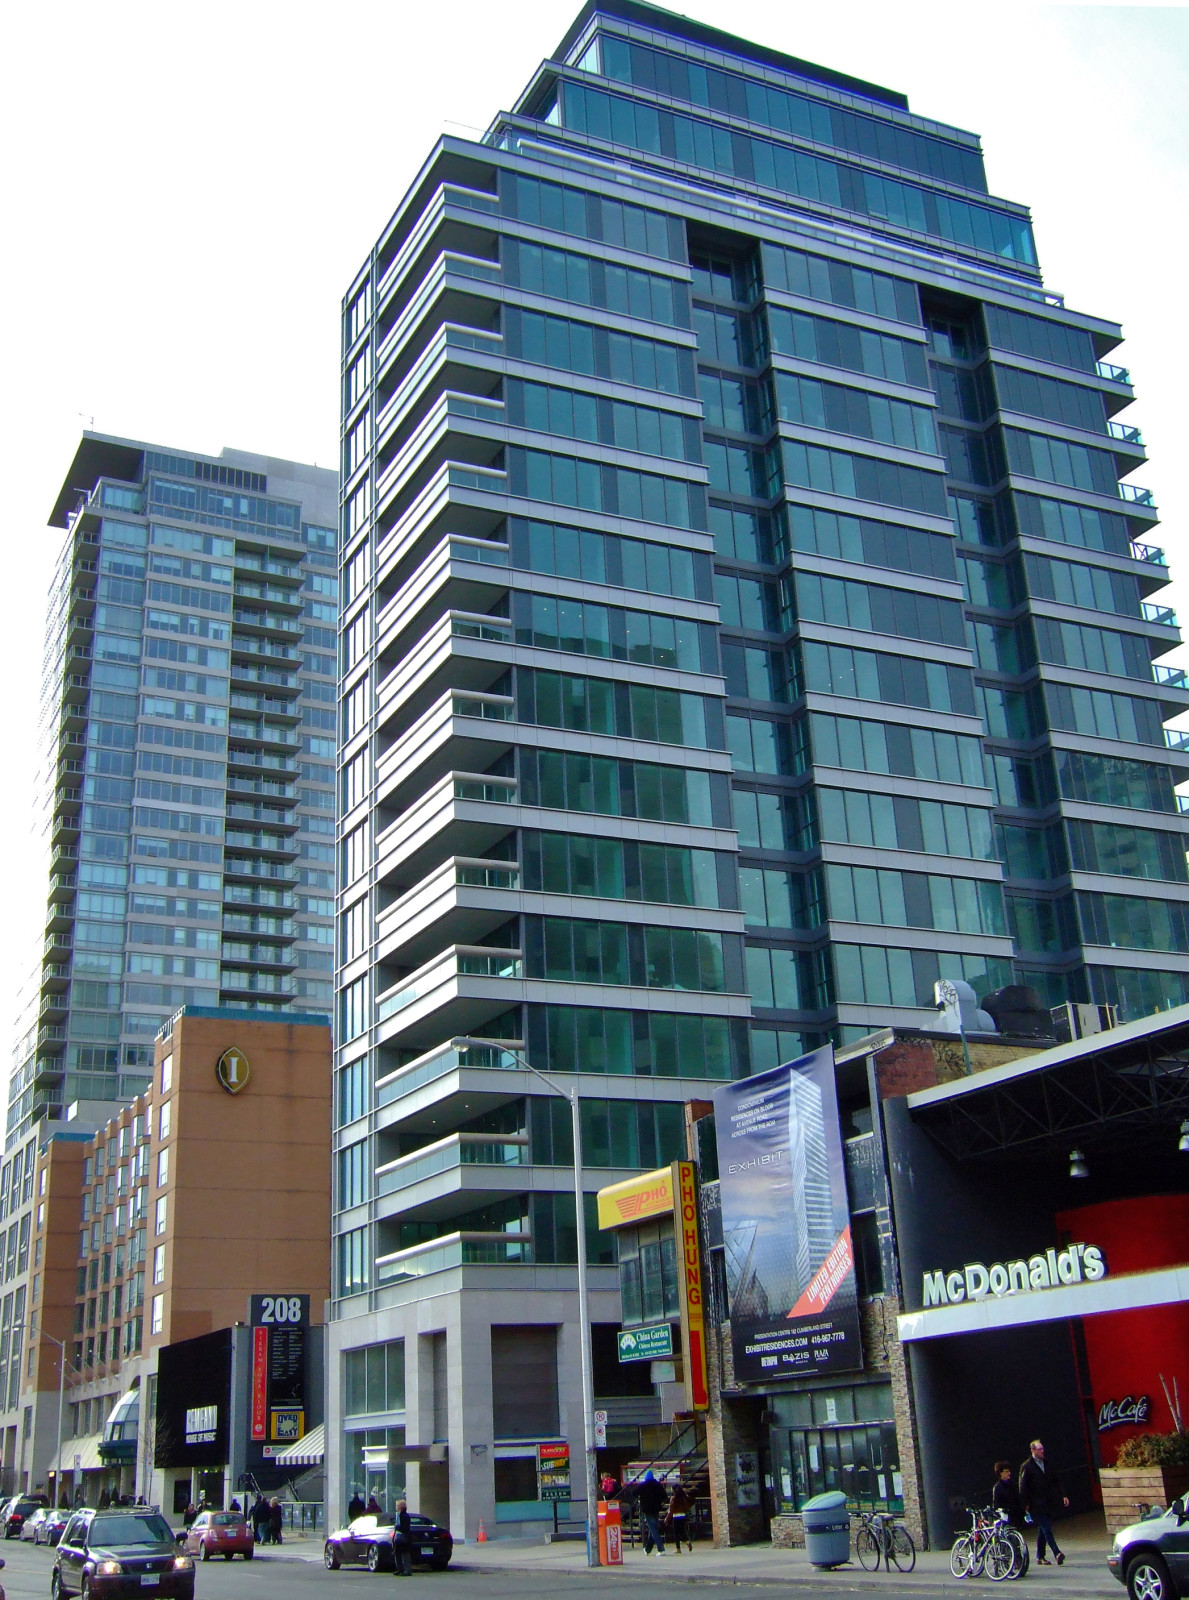 """Figure 3. Street view of Museumhouse nearby another new condo tower, One Bedford at Bloor (background), 2012. The Intercontinental Hotel, the brick-clad, mid-rise edifice, was prior to 2010 the tallest building along this corridor (and the only with permanent inscriptions). It is adorned with an """"I"""" brand mark. To describe One Bedford at Bloor and Museumhouse is challenging: they typify the built form of Toronto's new condo towers. [Idlewild]"""